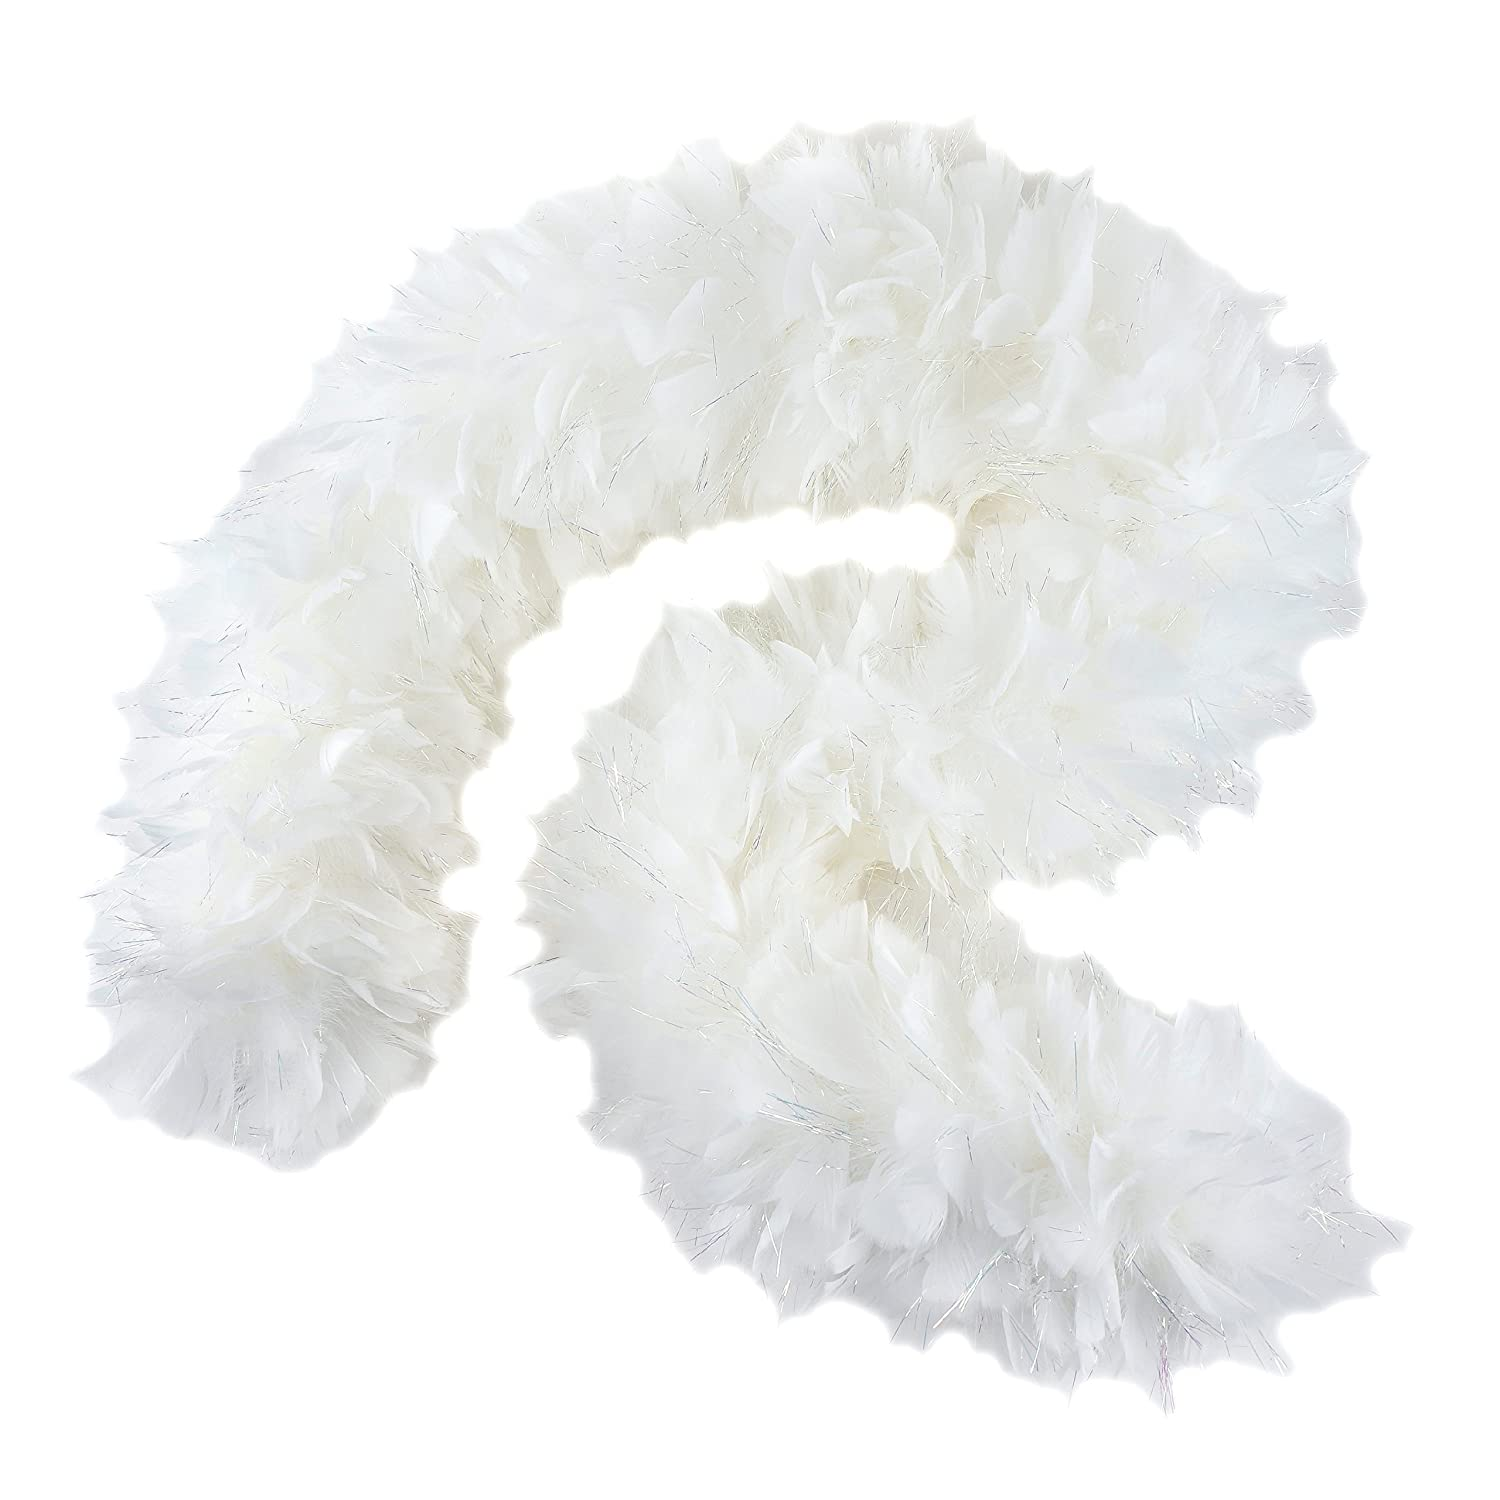 Zucker Feather (TM) - Turkey Boas w/Opal or Black Lurex White w/Opal Lurex ZUCKER FEATHER PRODUCTS 5-SF120--Y